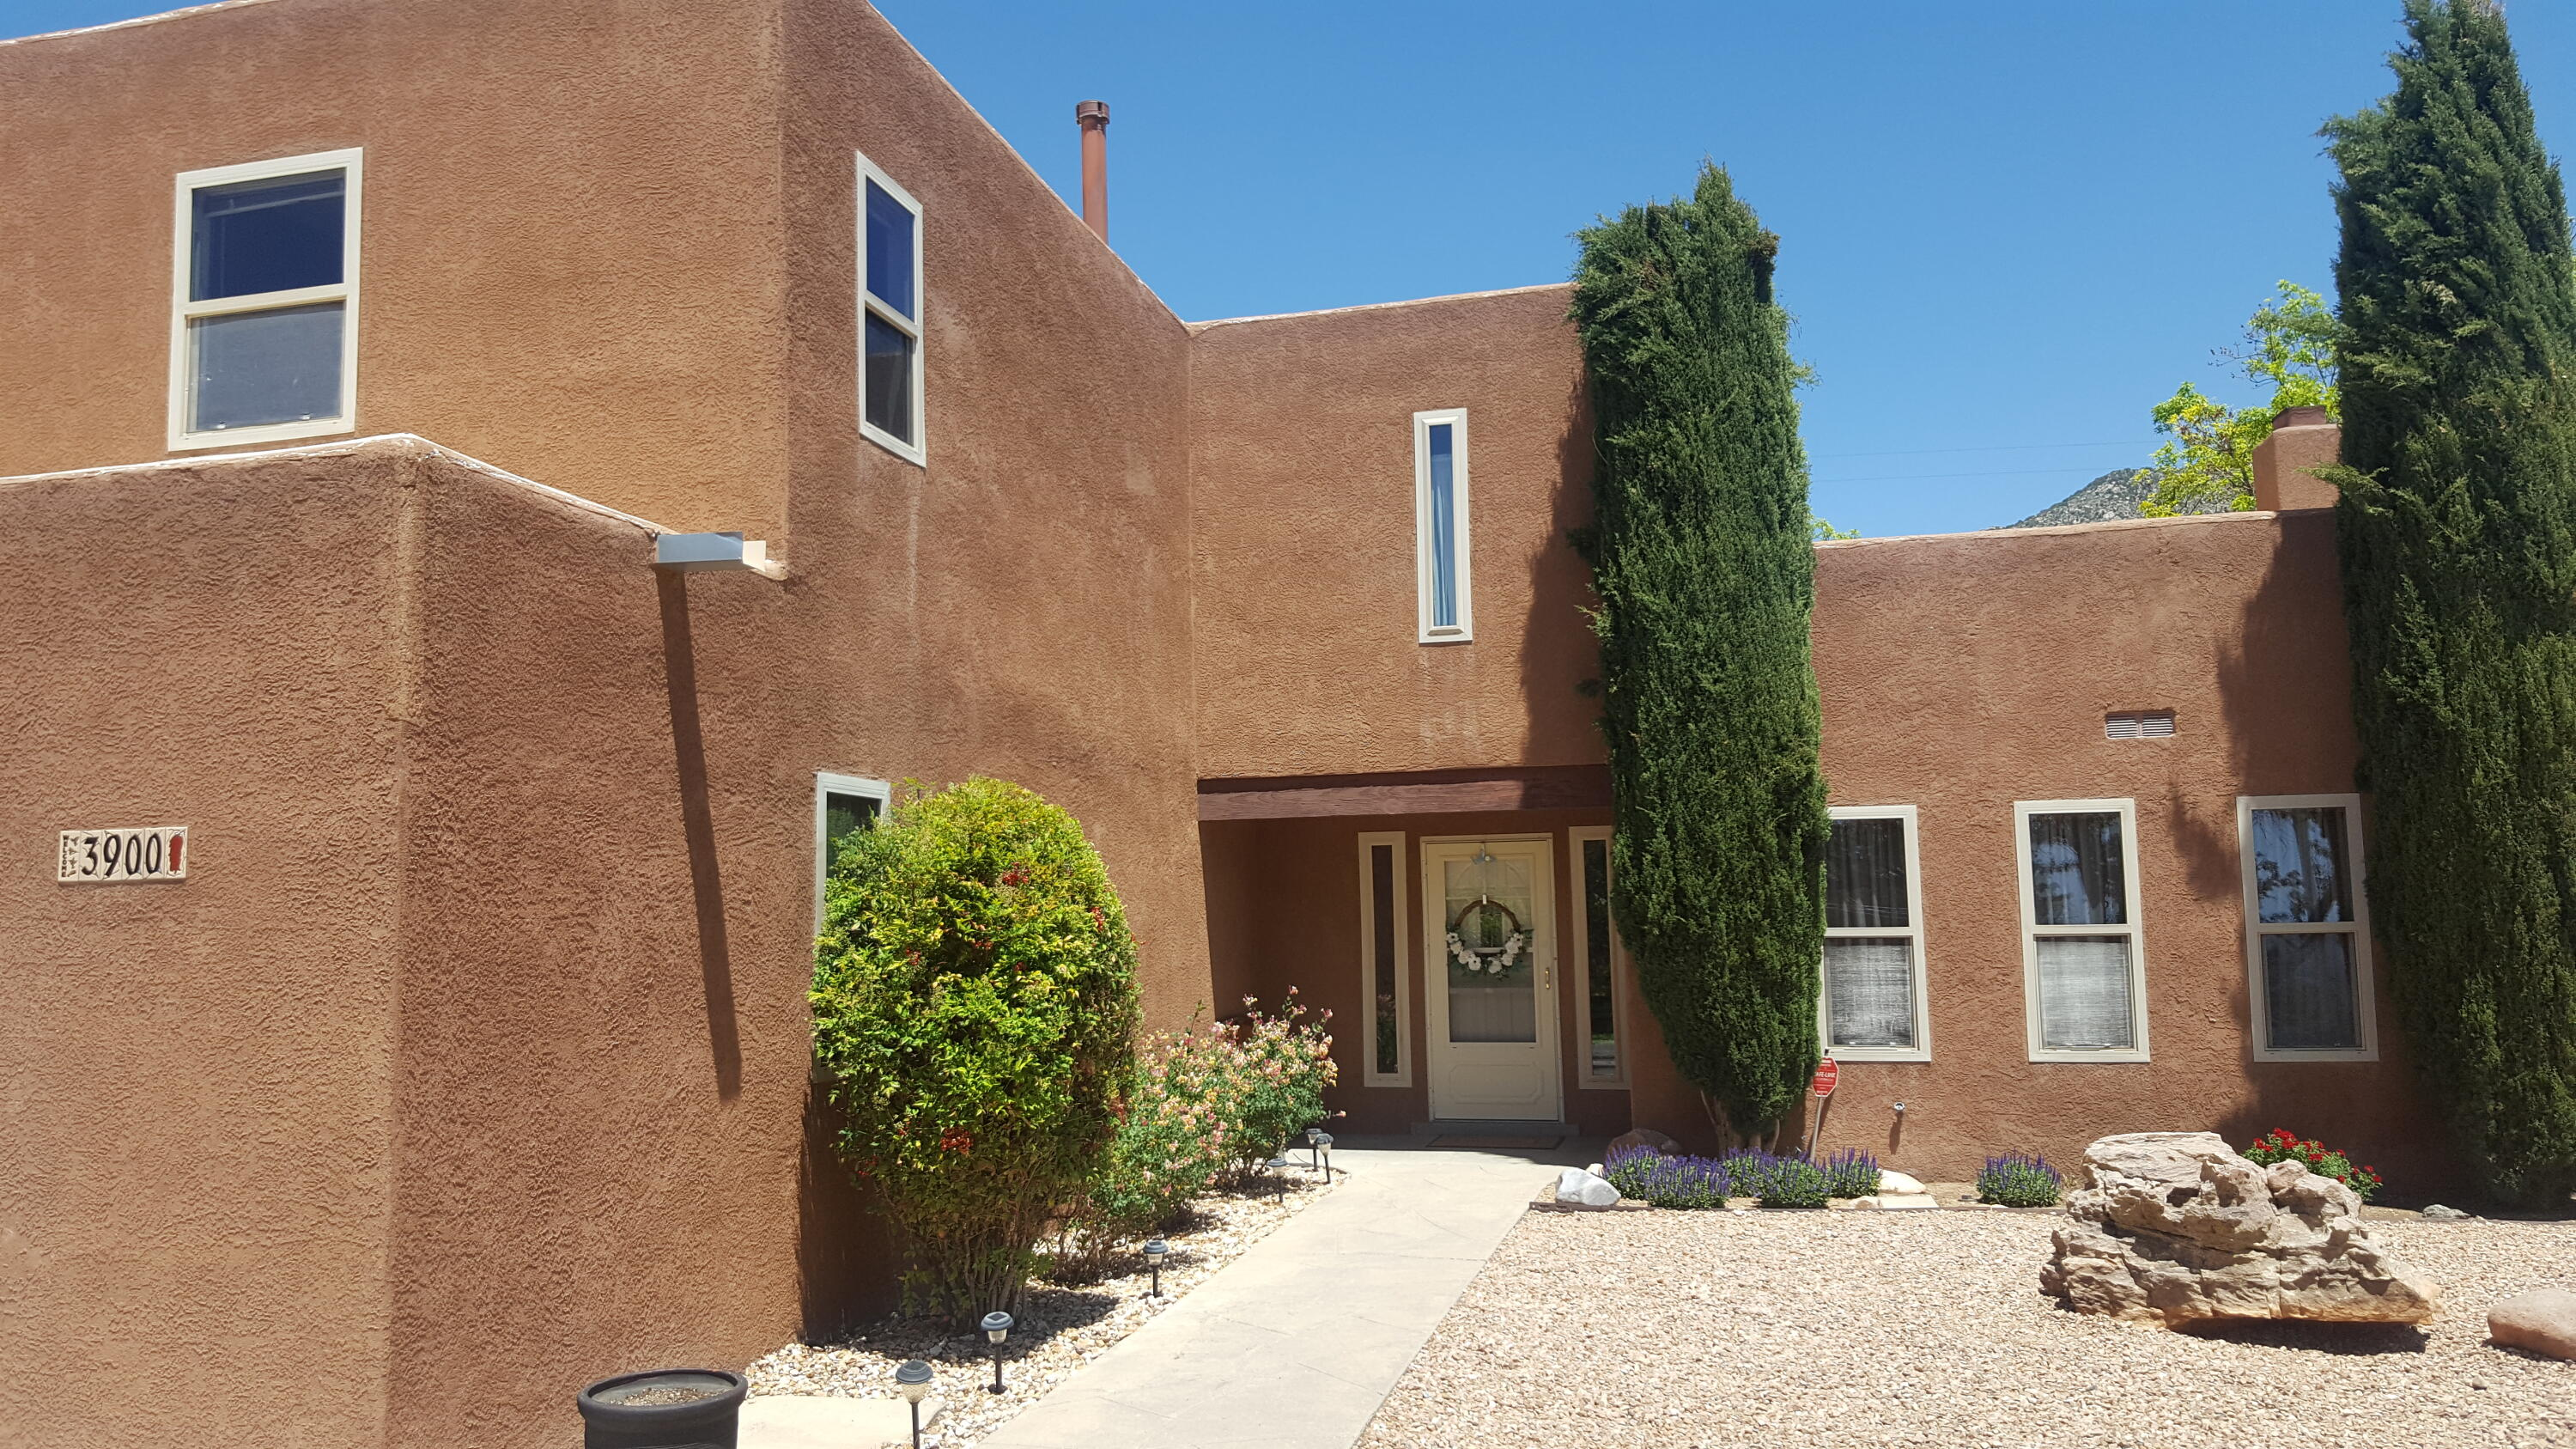 Spread out in this roomy 5 bedroom home on an oversize cul de sac corner lot in the Glenwood Hills area, El Dorado HS district. Critical updates in the last 5 years including TPO roof, water heater, coolers, carpeting upstairs, luxury vinyl in the living and dining rooms and a beautiful kitchen with granite and high end cabinetry with dovetail soft close drawers. Formal dining room can also serve as a second living area if desired. Handy flex space adjacent to the garage can be a home office, exercise room, hobby or homework area. Huge laundry room and spacious garage. Upstairs are the generous size bedrooms. Great views from the owner's suite deck. Gorgeous lush backyard with trees, lawn and east facing covered patio is very private as there is open space behind. Backyard access & shed.